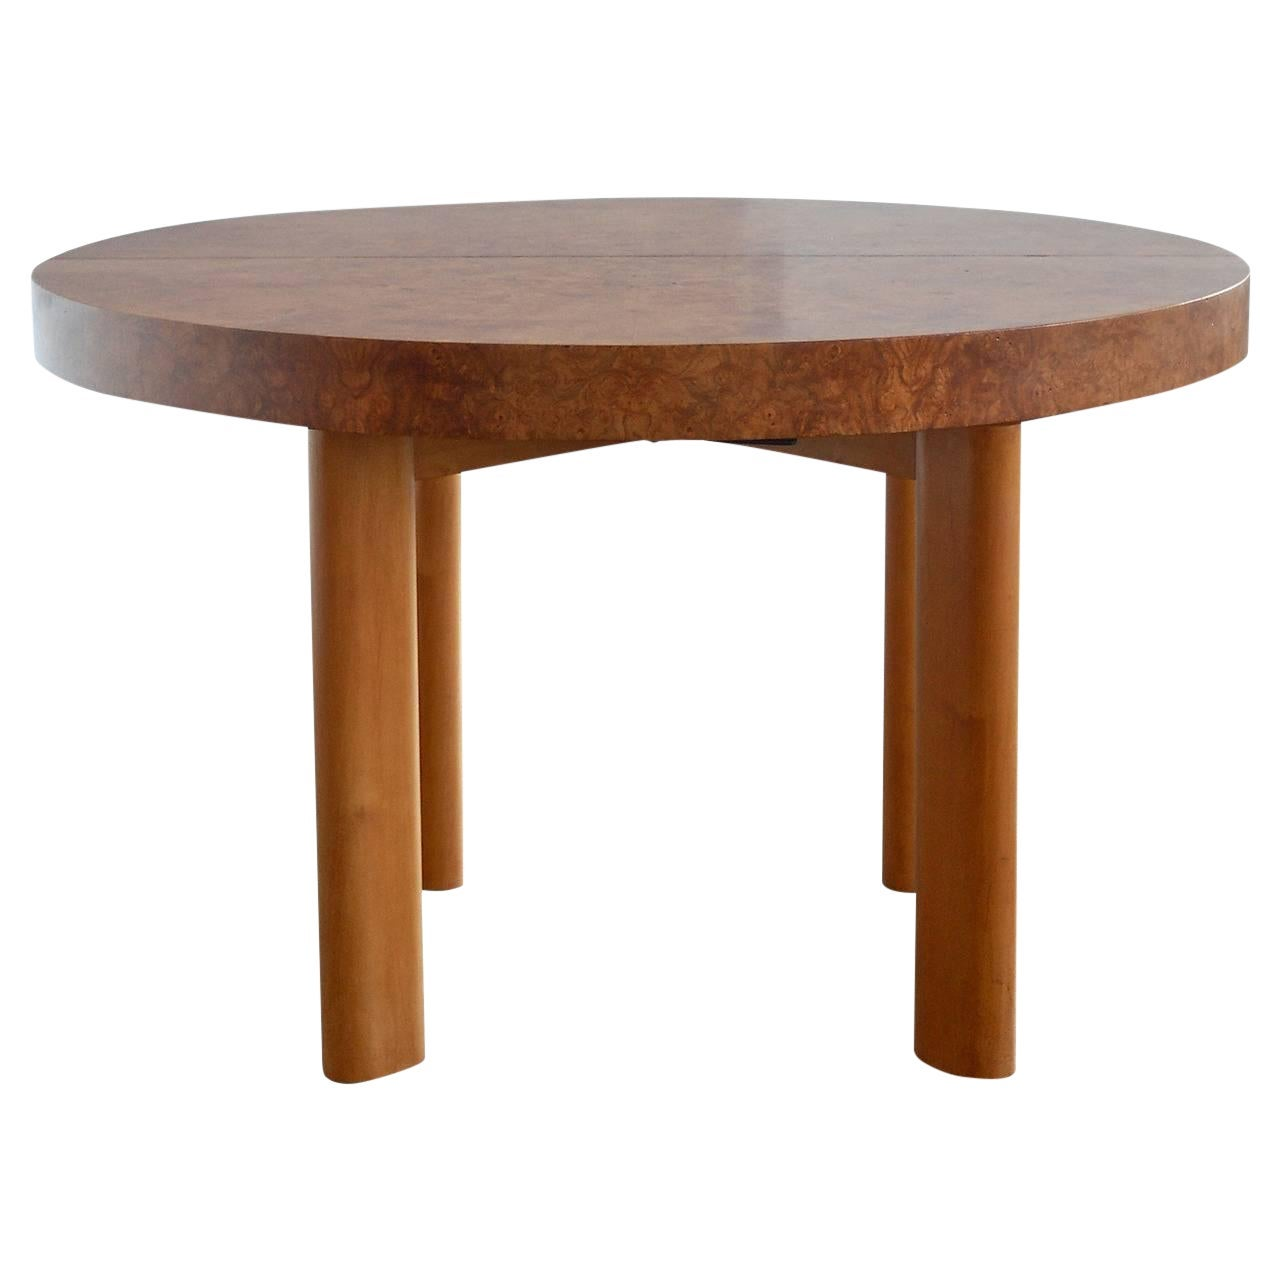 extendable-dining-table-by-axel-einar-hjorth-1930s-9093